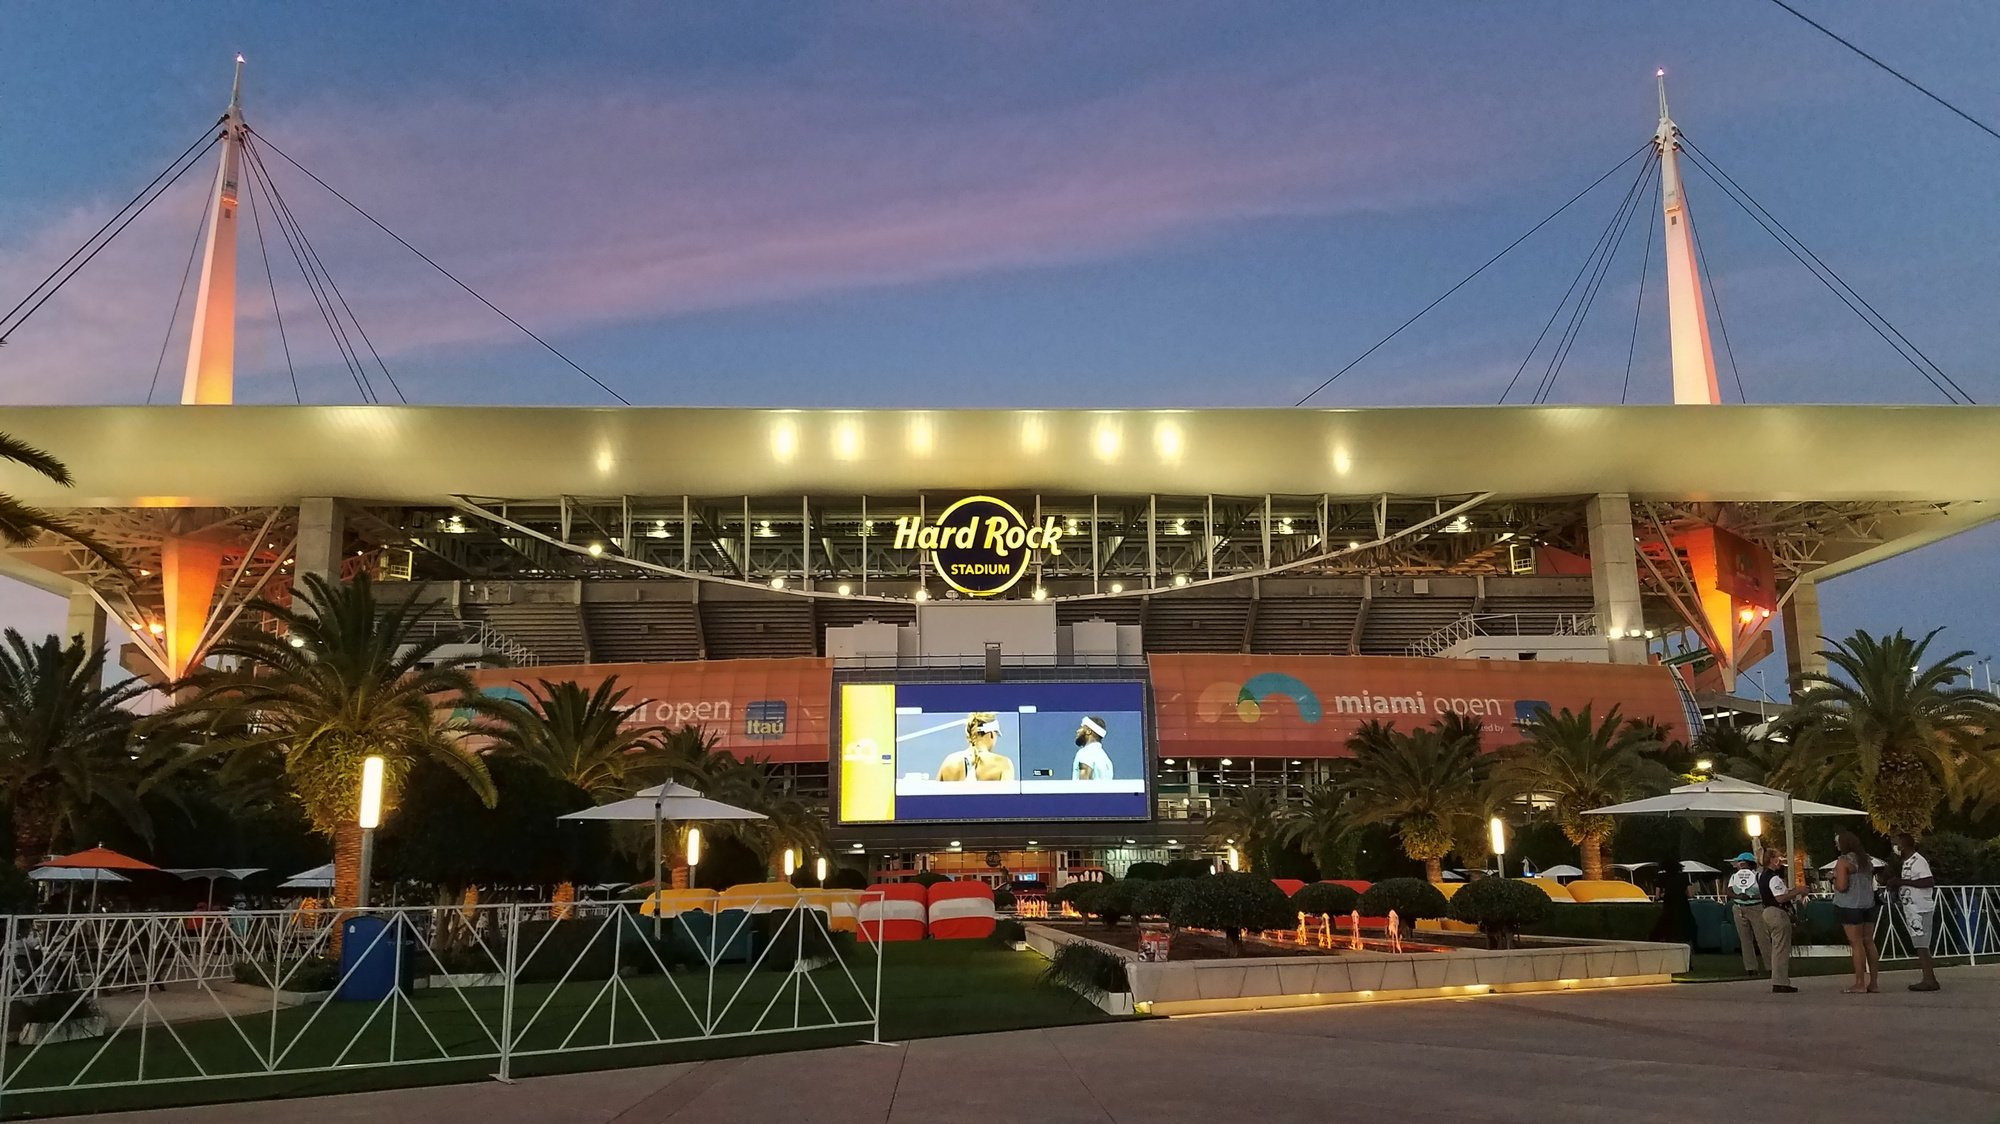 epa09142647 (FILE) - Exterior view of the Hard Rock Stadium at sunset during the Miami Open tennis tournament in Miami Gardens, Florida, USA, 26 March 2021 (re-issued on 18 April 2021). On 18 April 2021 Formula One organizers announced that the new Miami Grand Prix will join the F1 calendar in 2022. The race will be held on a new circuit at the Hard Rock Stadium complex in Miami Gardens.  EPA/RHONA WISE *** Local Caption *** 56790123